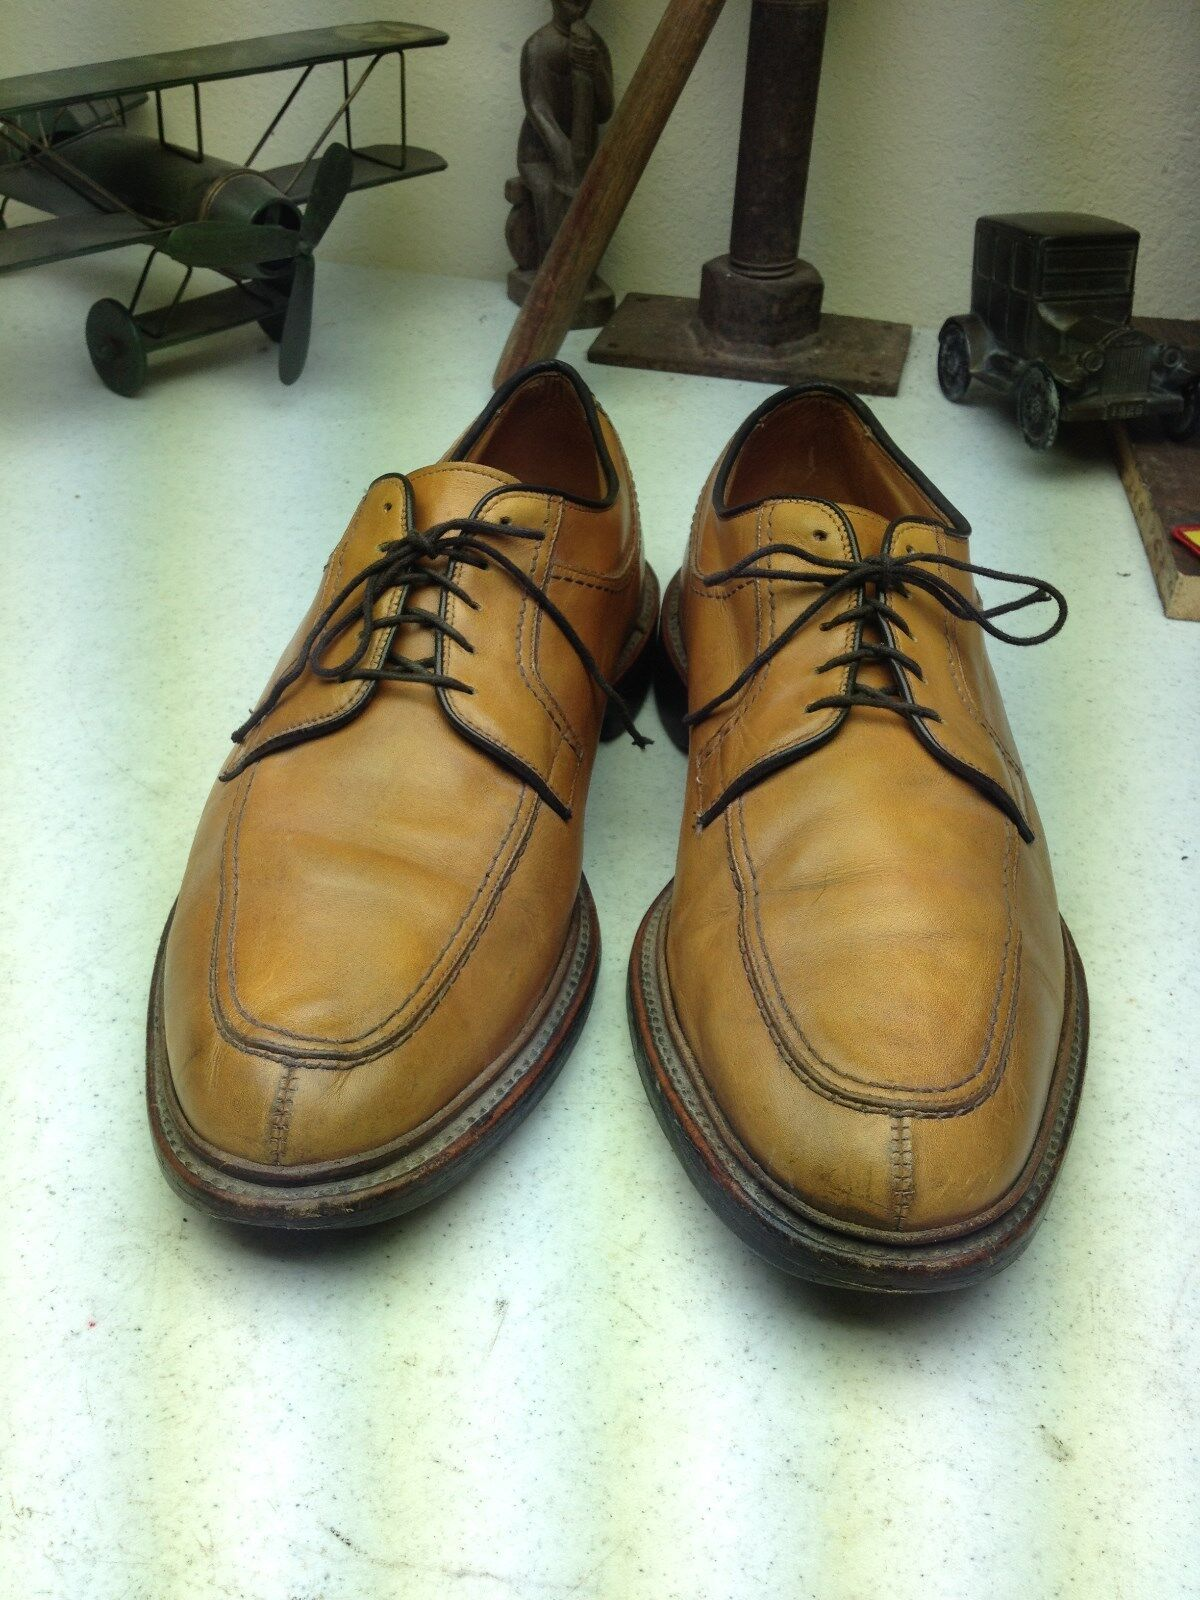 DISTRESSED ALLEN EDMONDS NORSE M TARD TARD TARD LEATHER LACE UP OXFORD  SHOES SIZE 11 E 4d7d8f